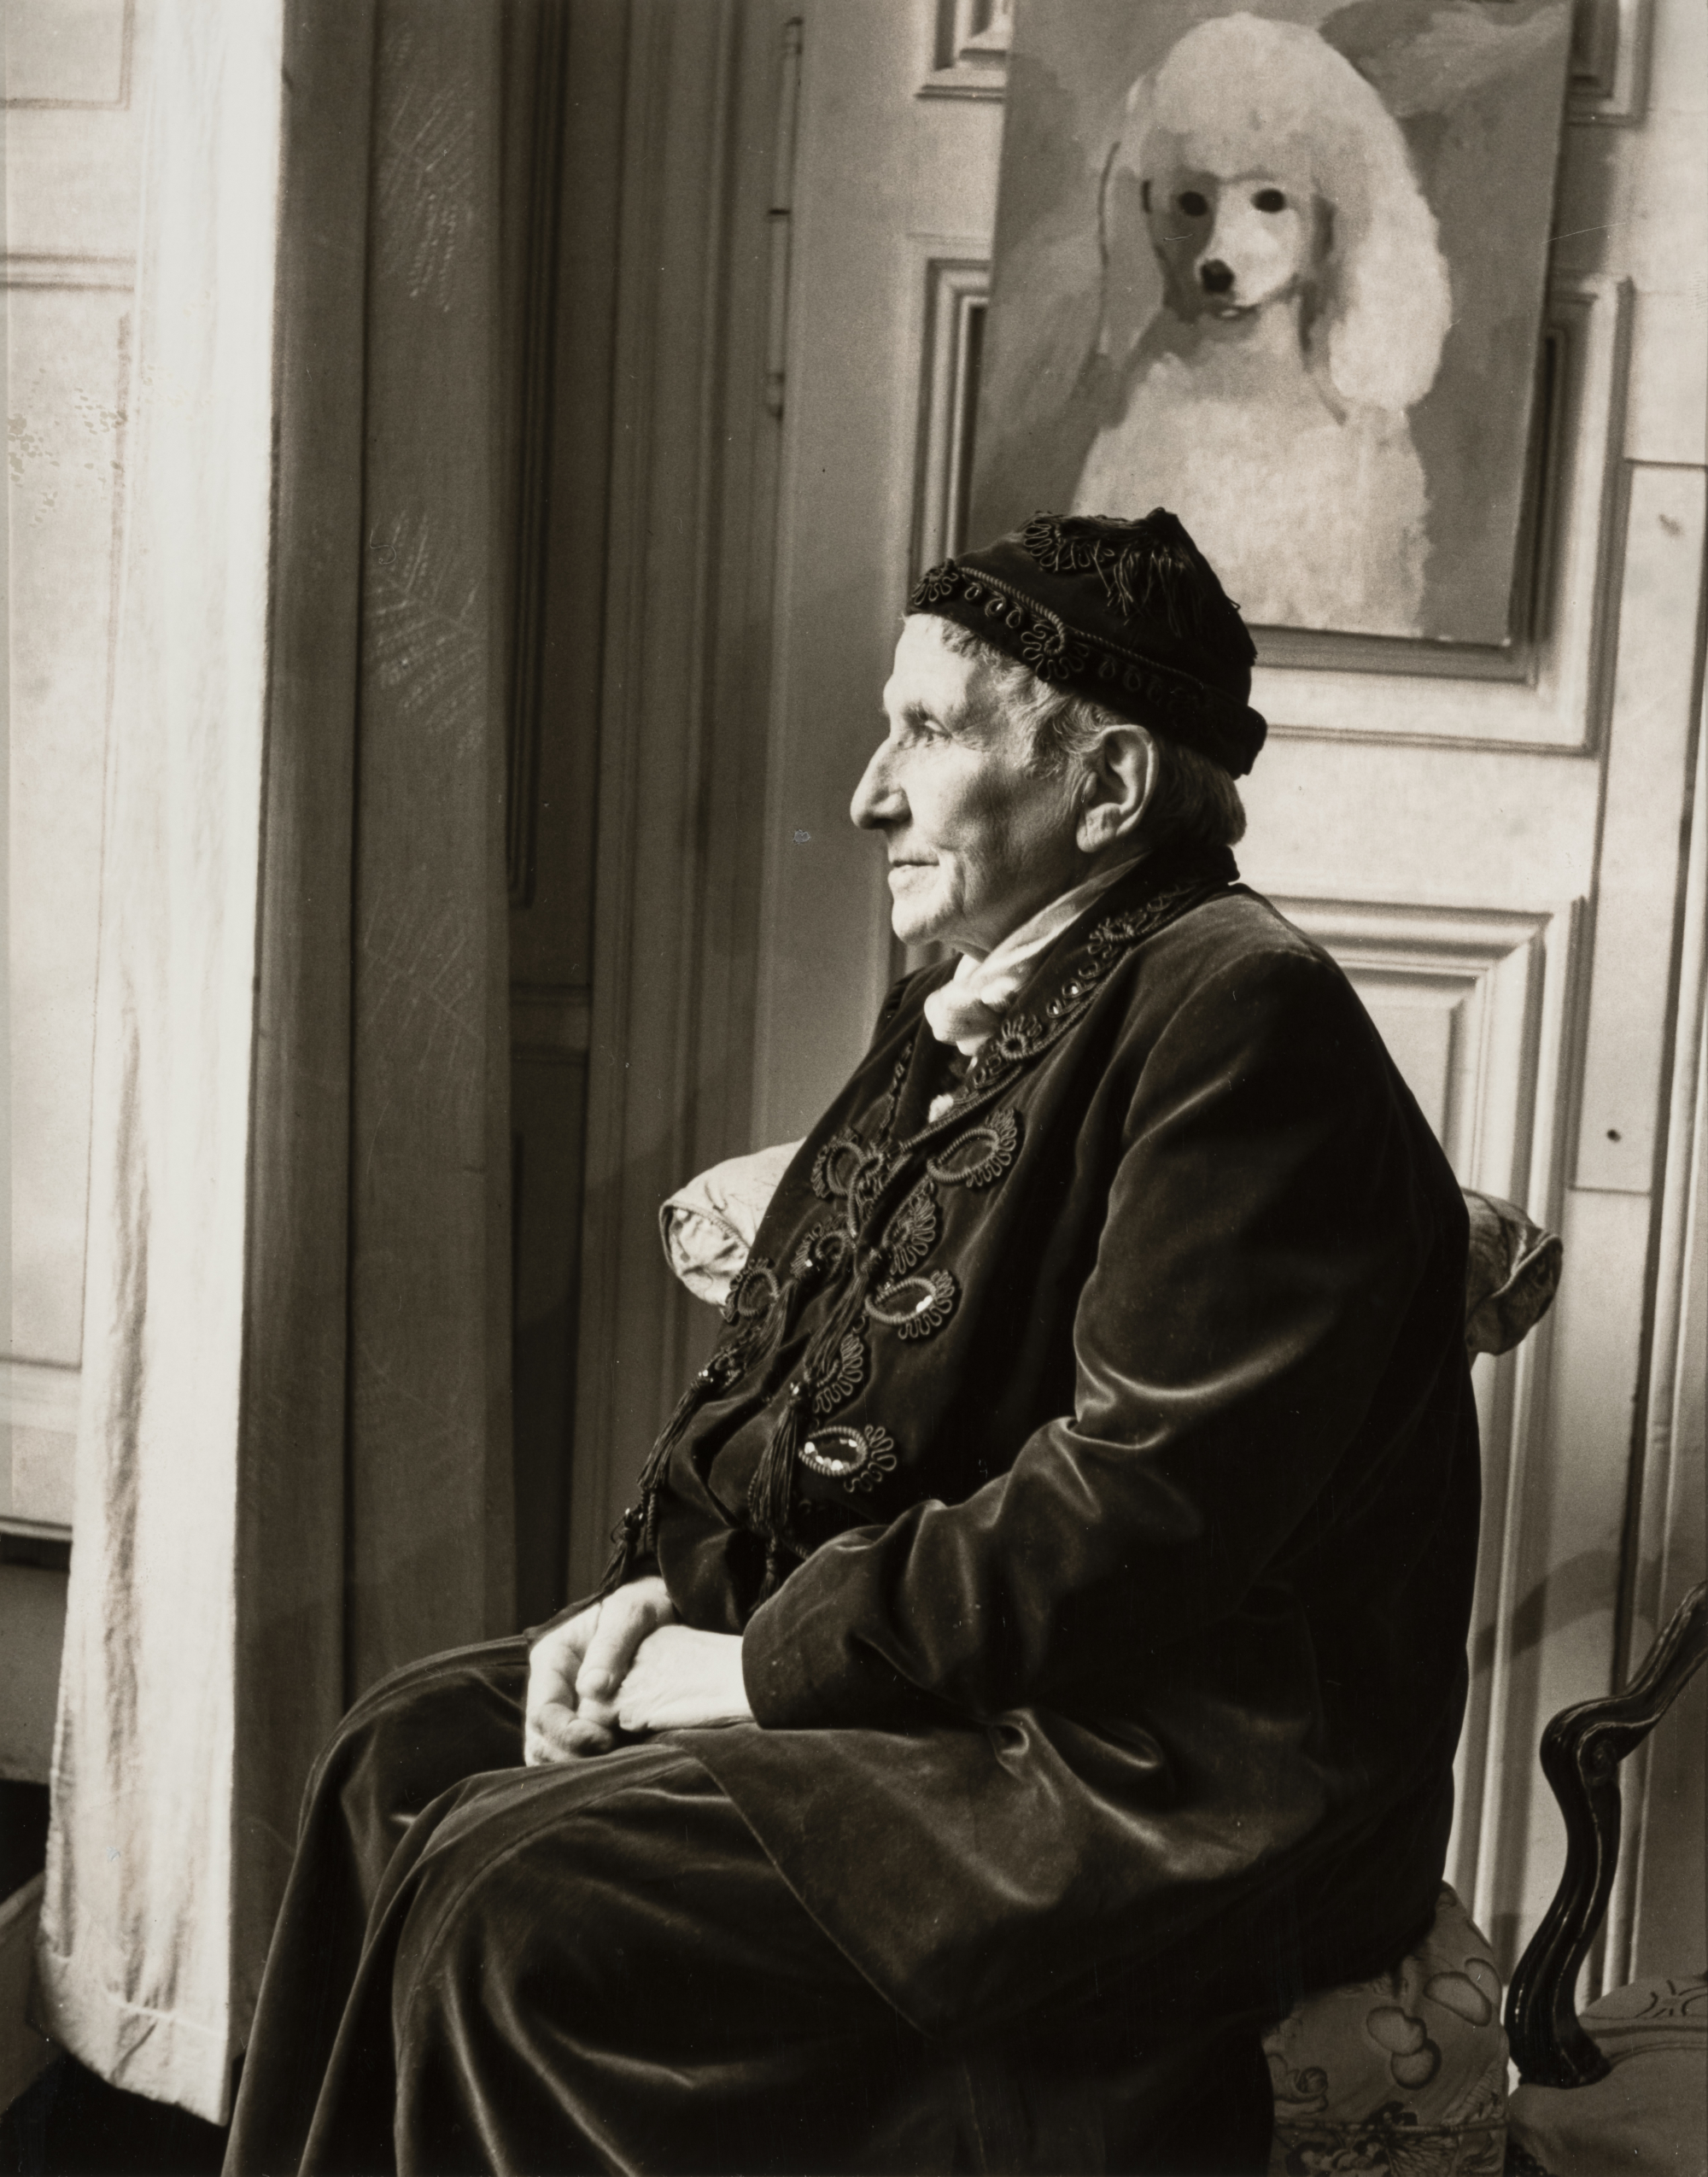 Horst P. Horst made a dramatically illuminated photo of the American writer Gertrude Stein in 1946.